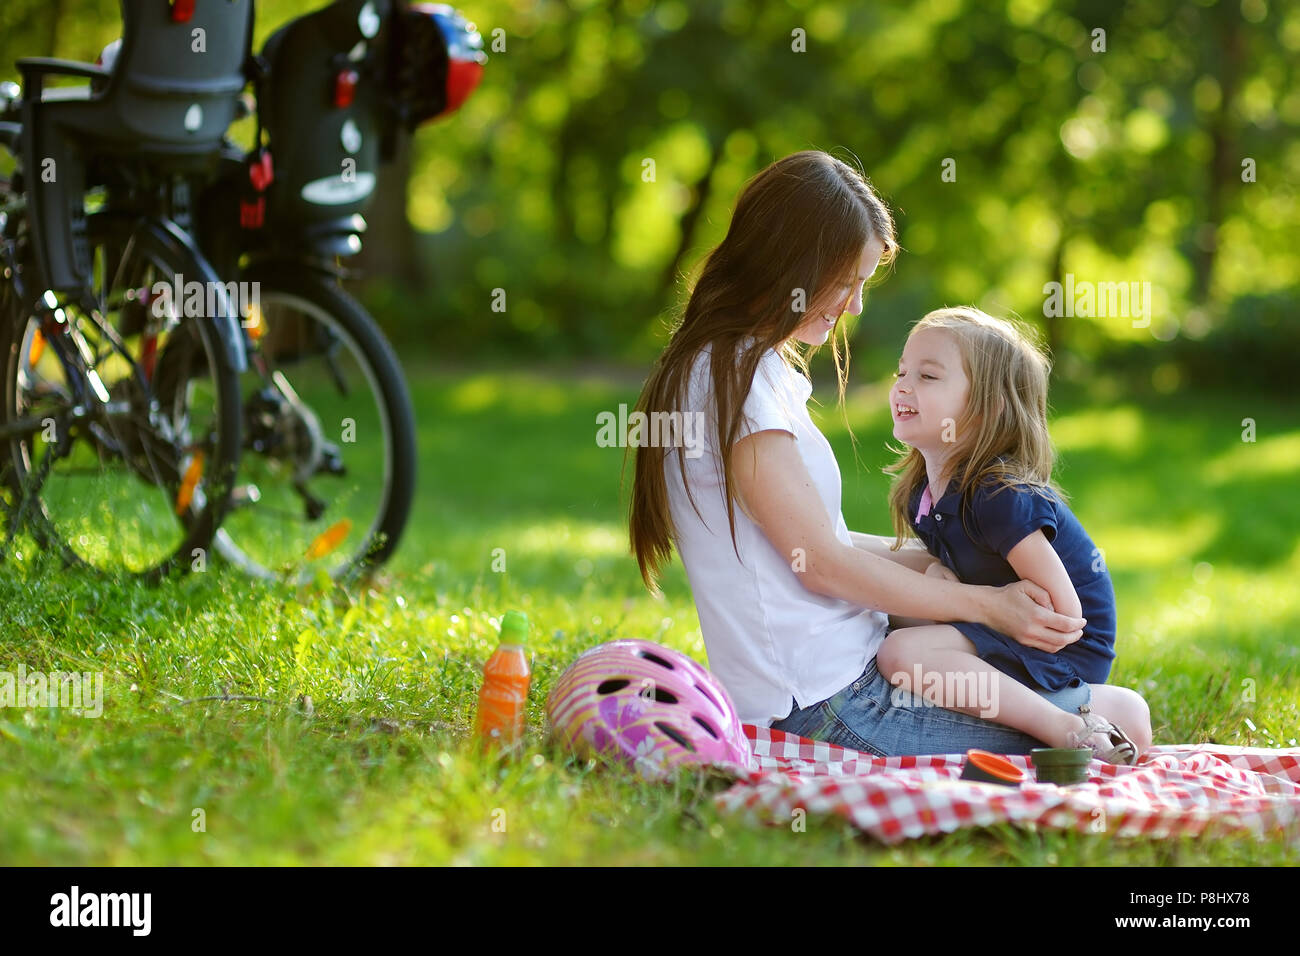 Young mother and her daughter picnicking in the park - Stock Image